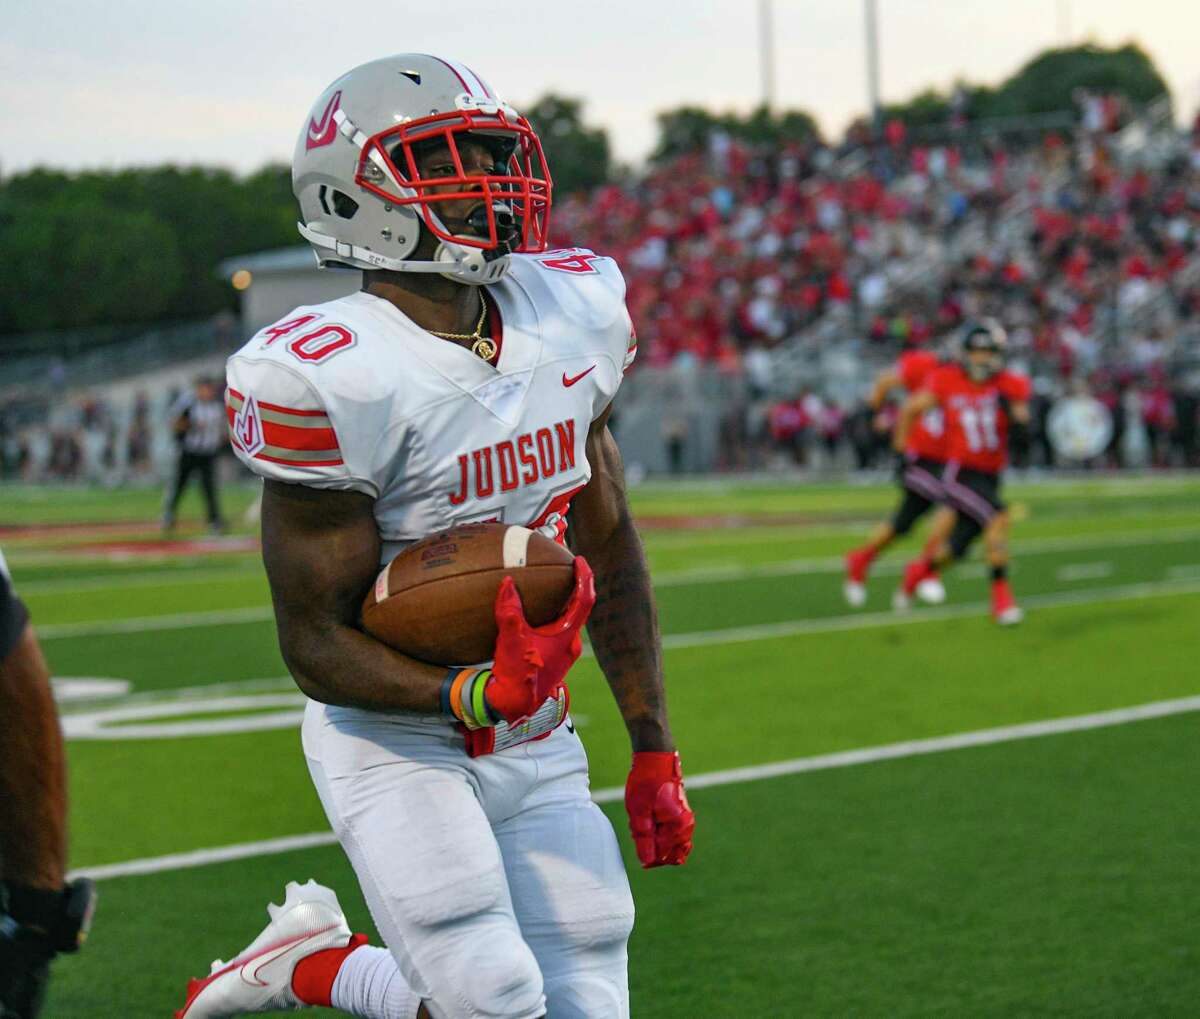 Judson's Marvin Beasley runs for a first-quarter score against Lake Travis during high school football action at Cavalier Stadium on Friday, Sept. 3, 2021.